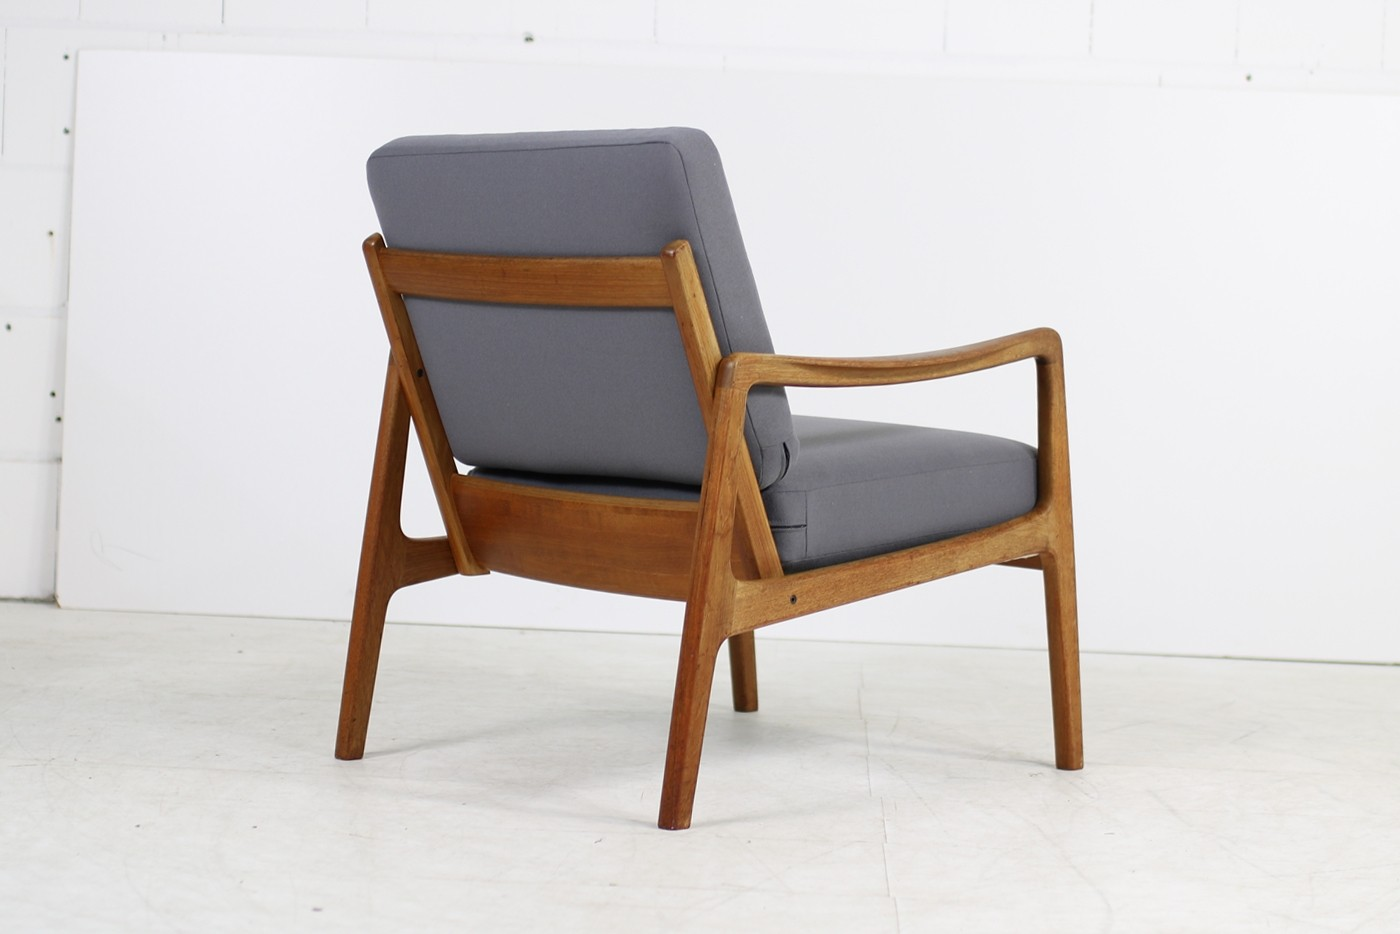 Teak Sessel 1960s Ole Wanscher Teak Easy Chair Mod 109 France Son